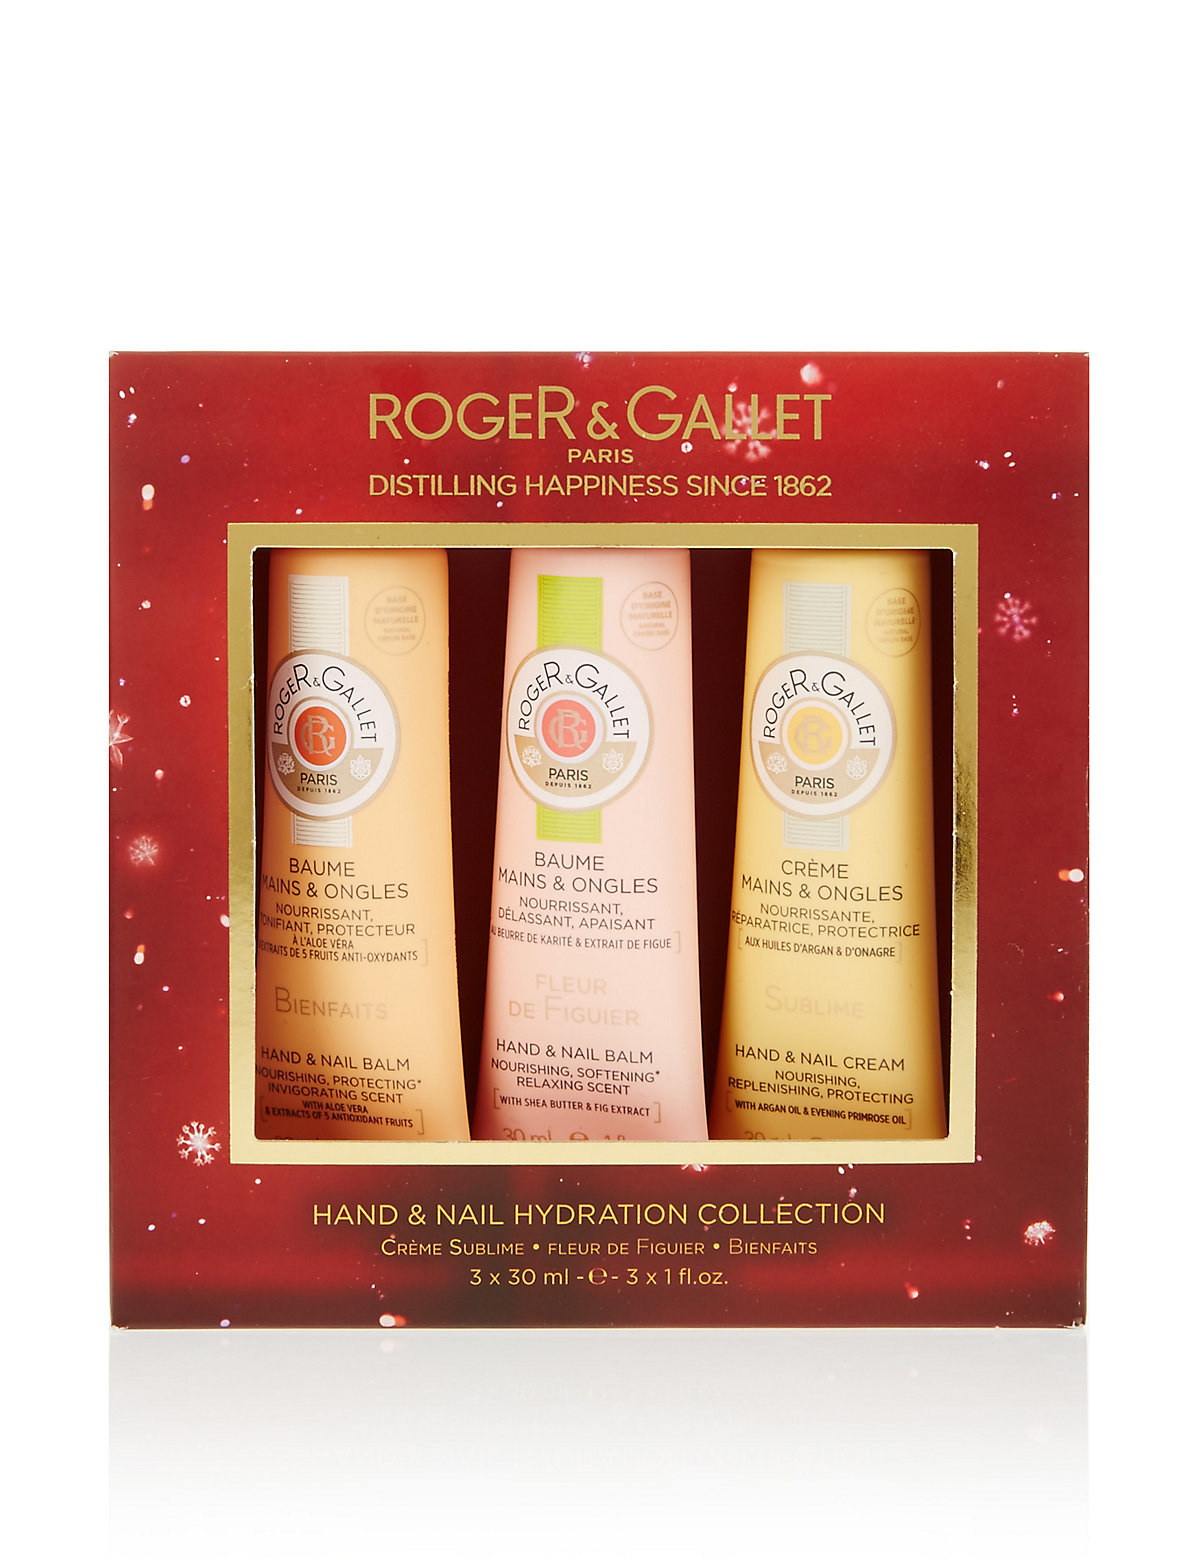 Roger&Gallet Hand & Nail Hydration Collection